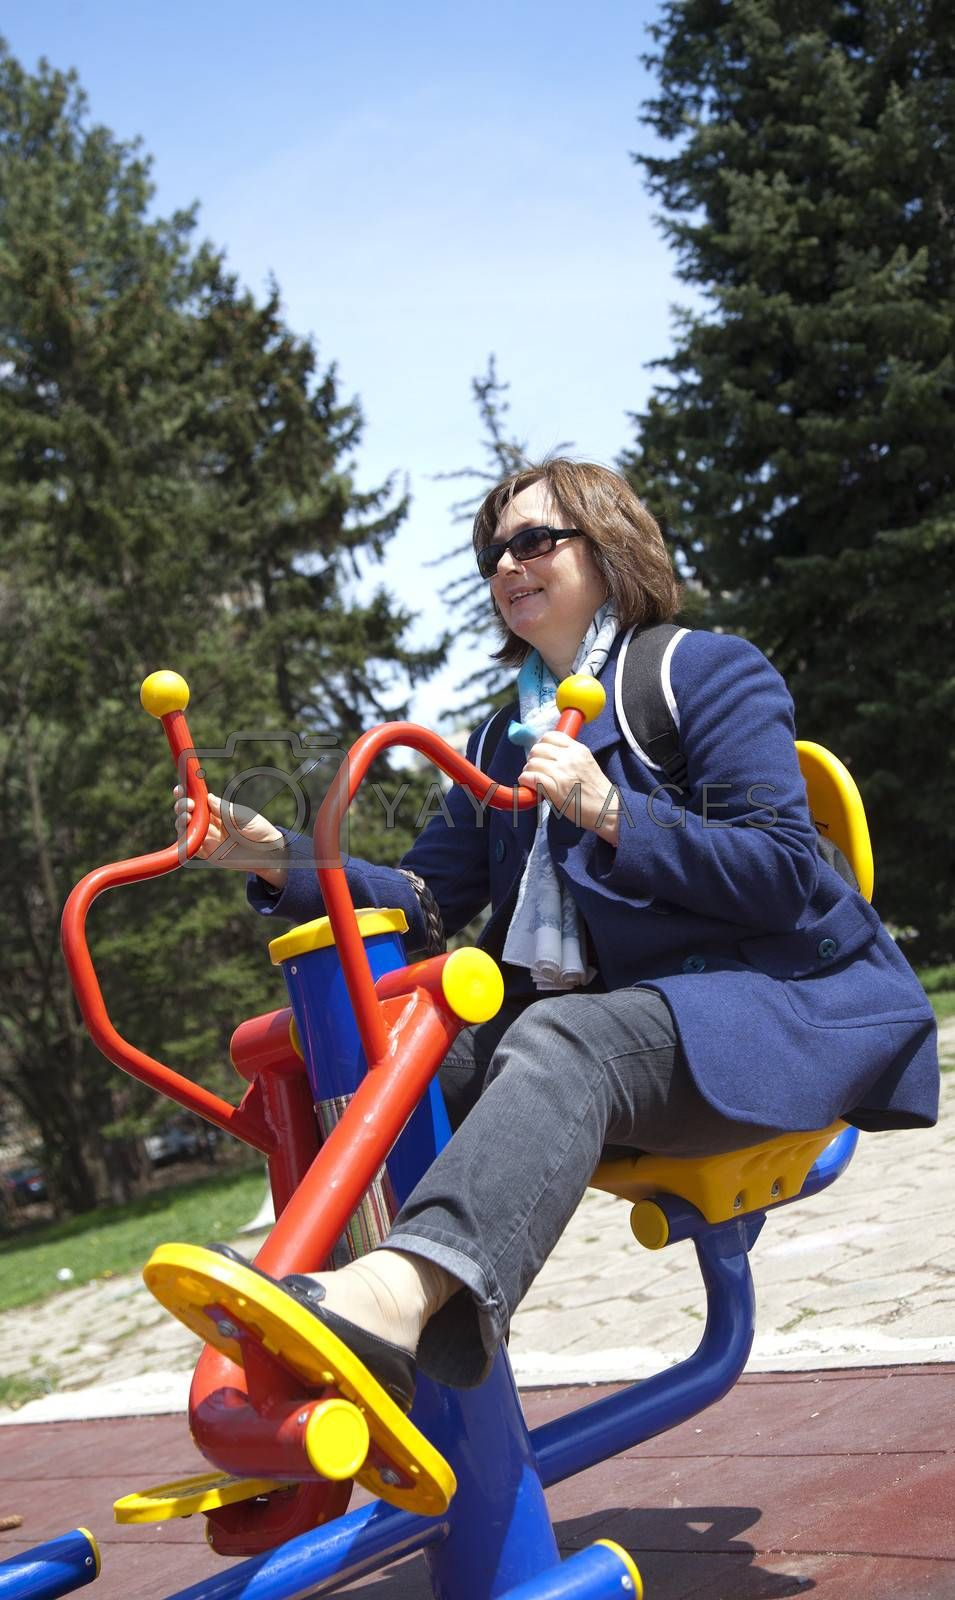 Adult woman with sunglasses exercising on stepper fitness machine in park